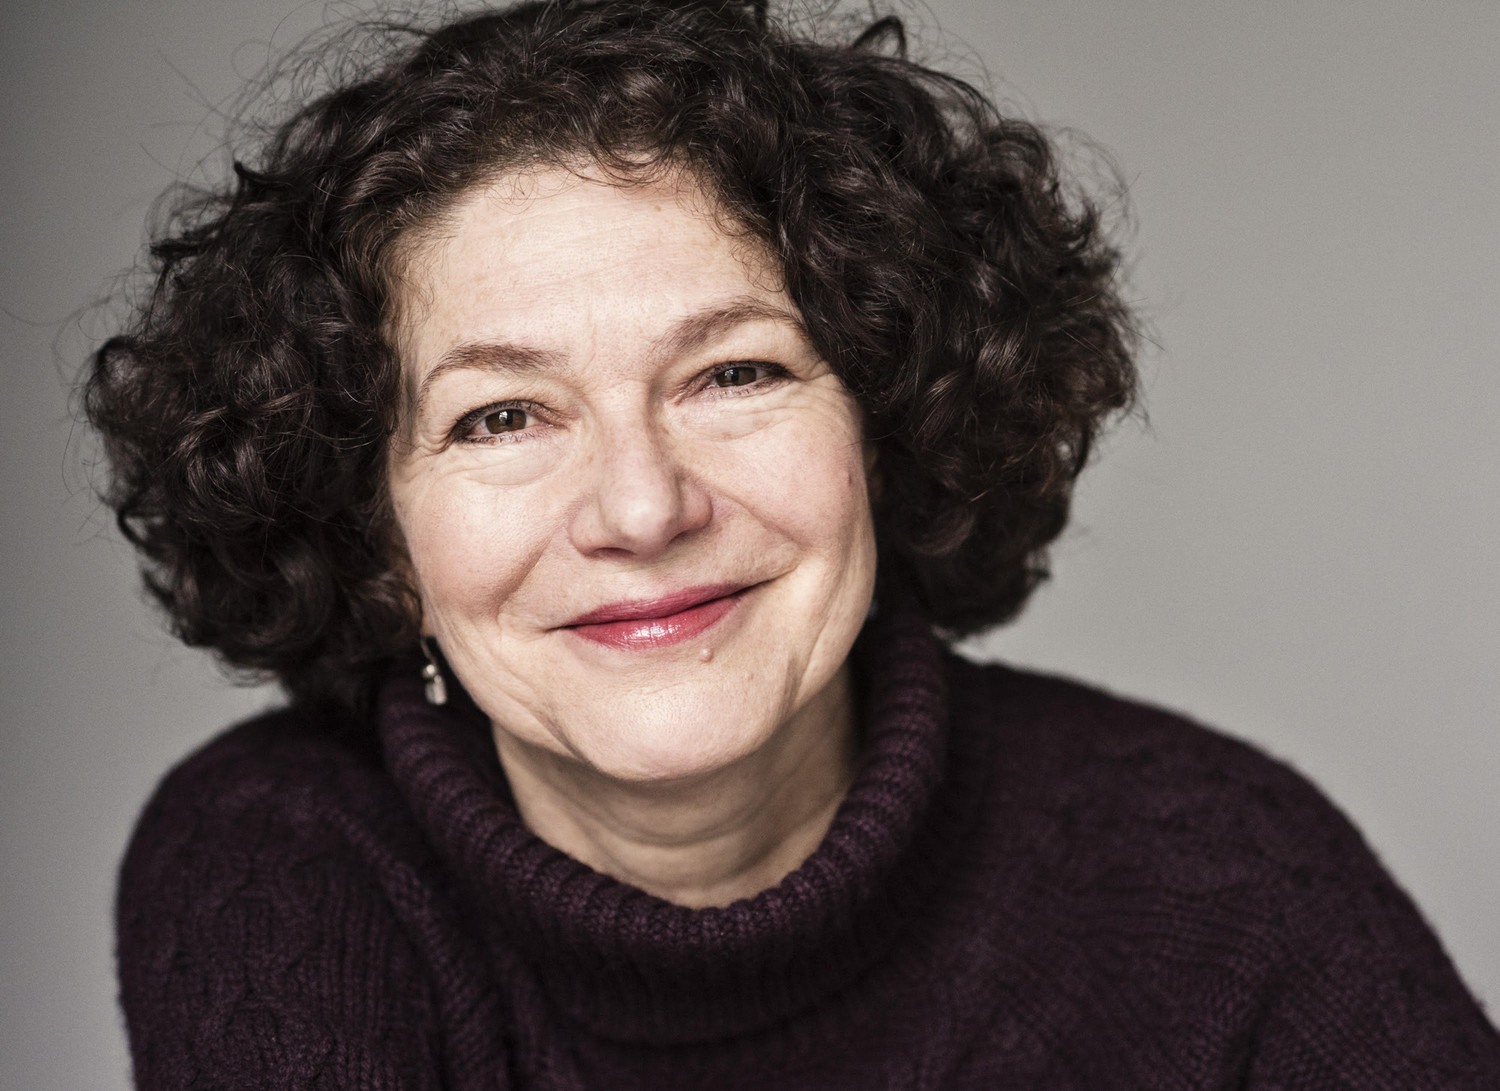 BWW Interview: Louise Gold Talks FIDDLER ON THE ROOF